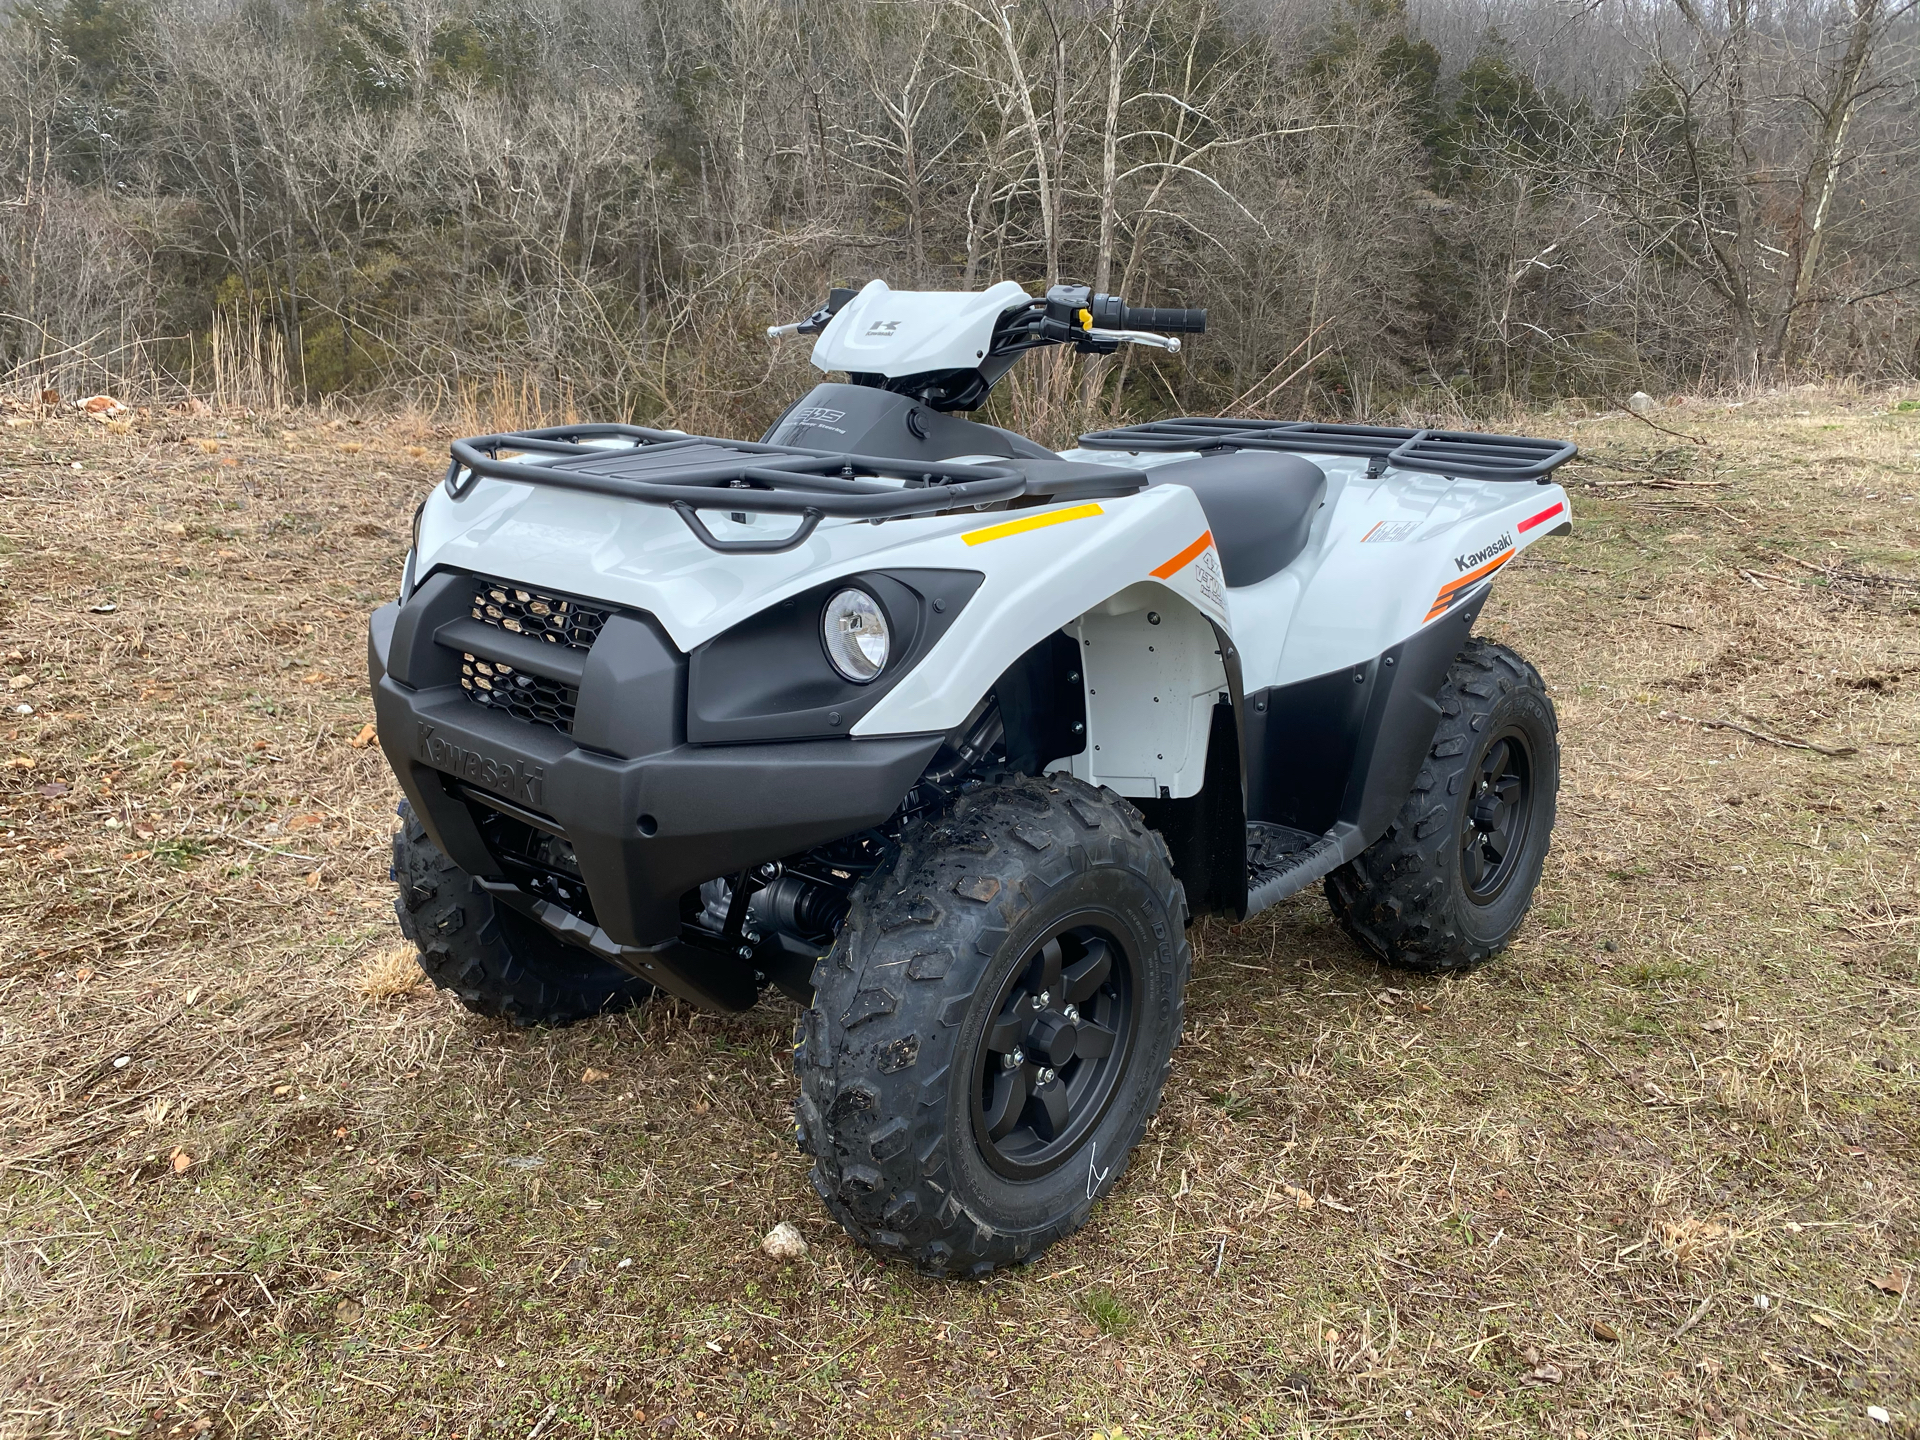 2021 Kawasaki Brute Force 750 4x4i EPS in Harrison, Arkansas - Photo 8